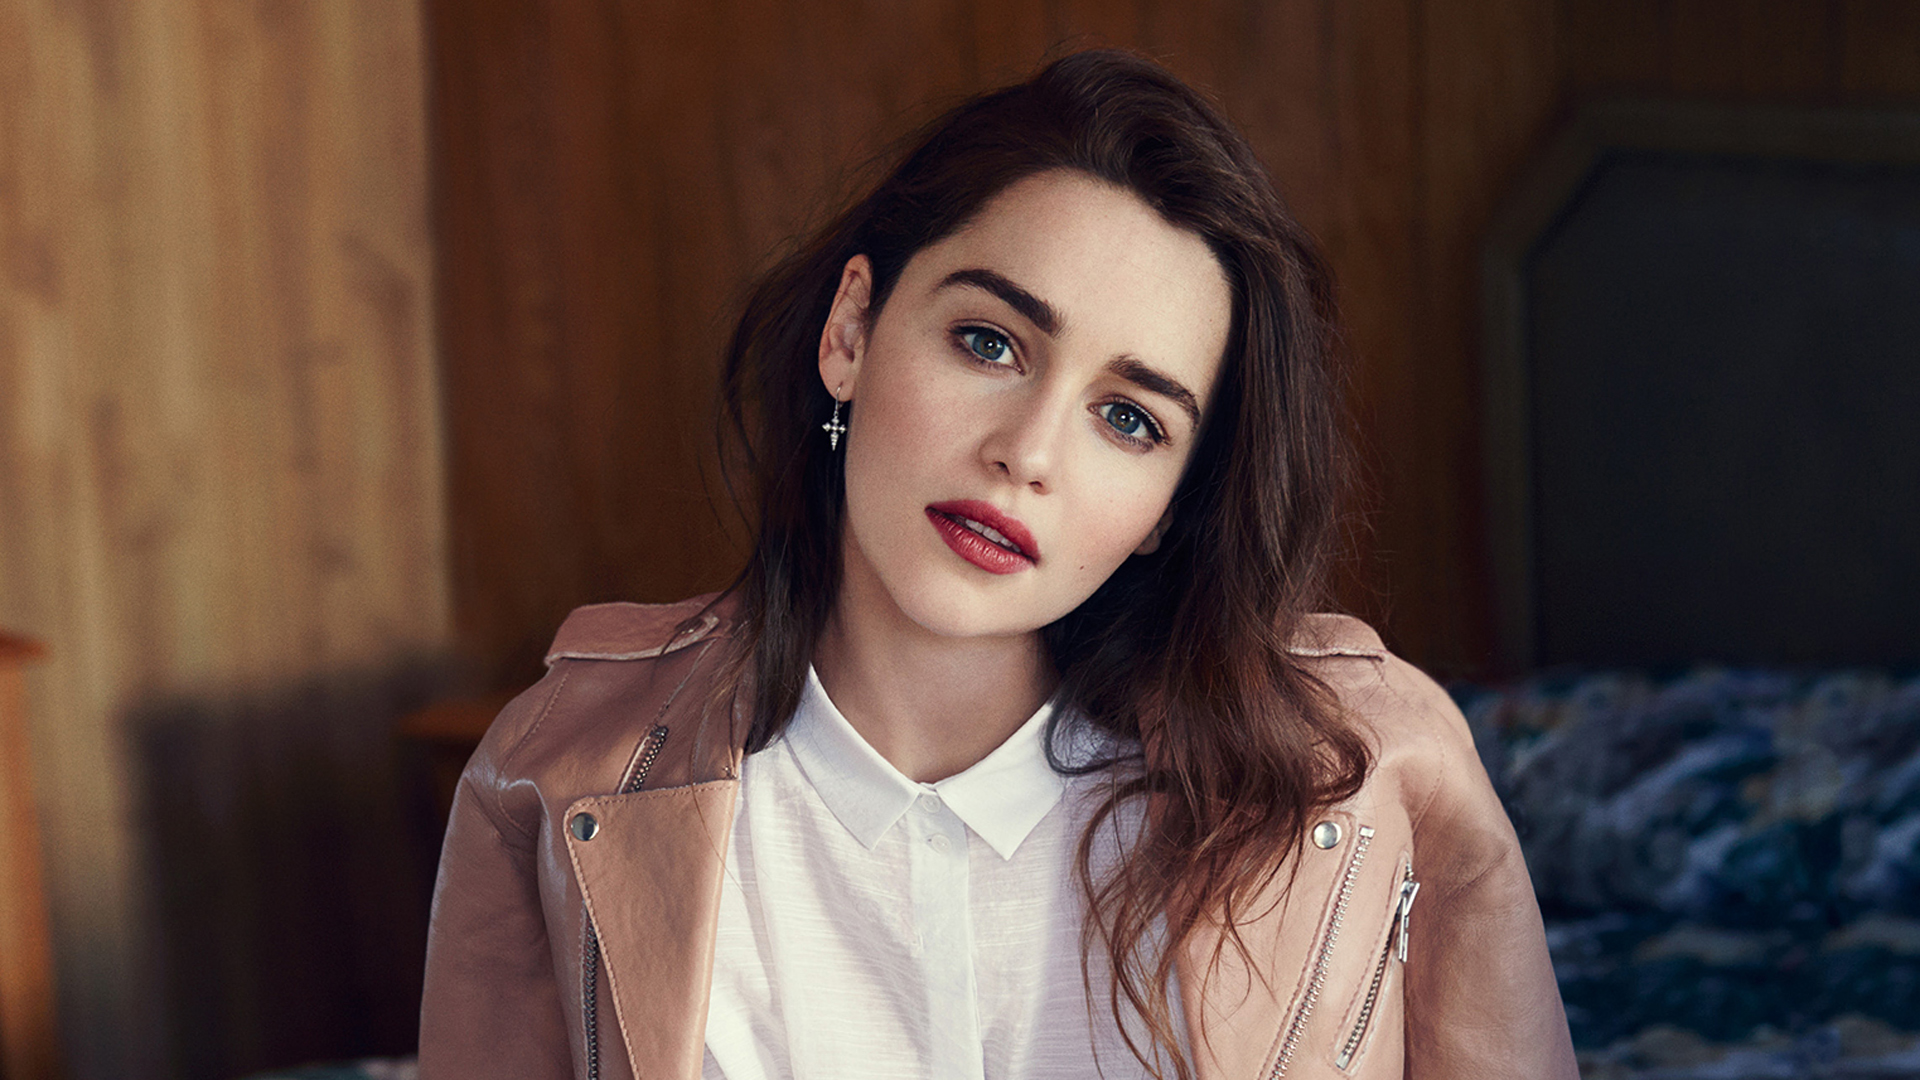 emilia clarke actress wallpaper background